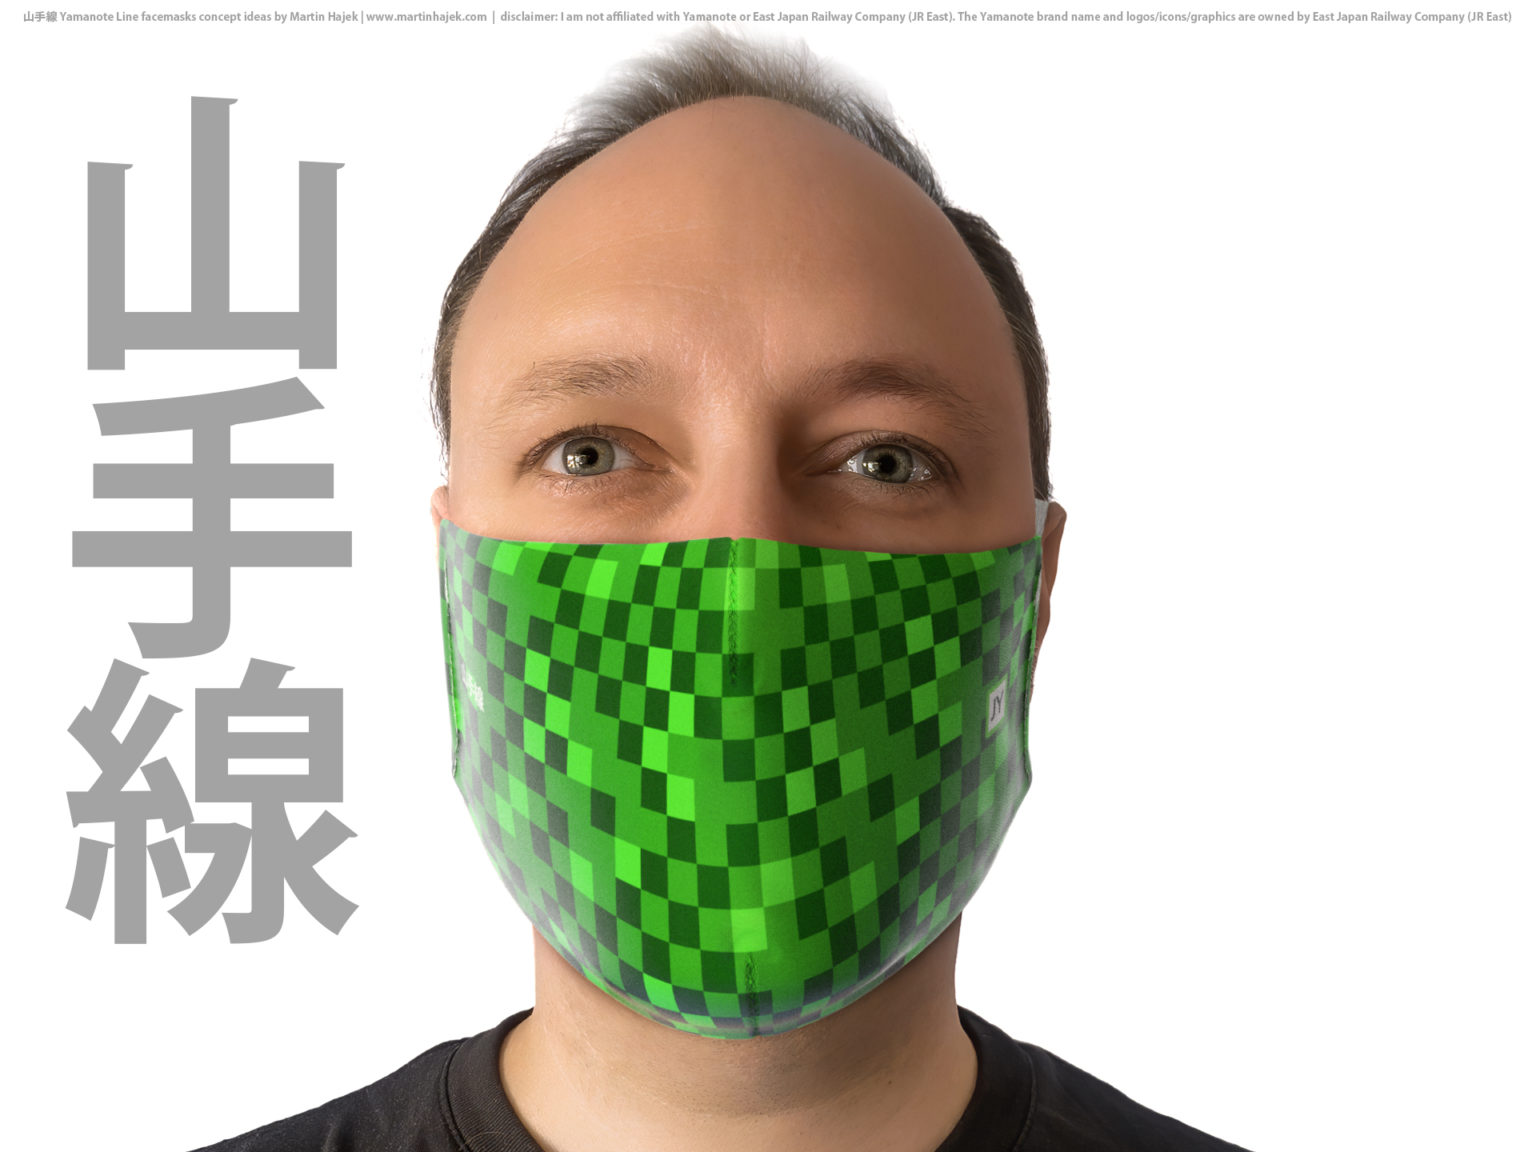 Yamanote line face mask concept